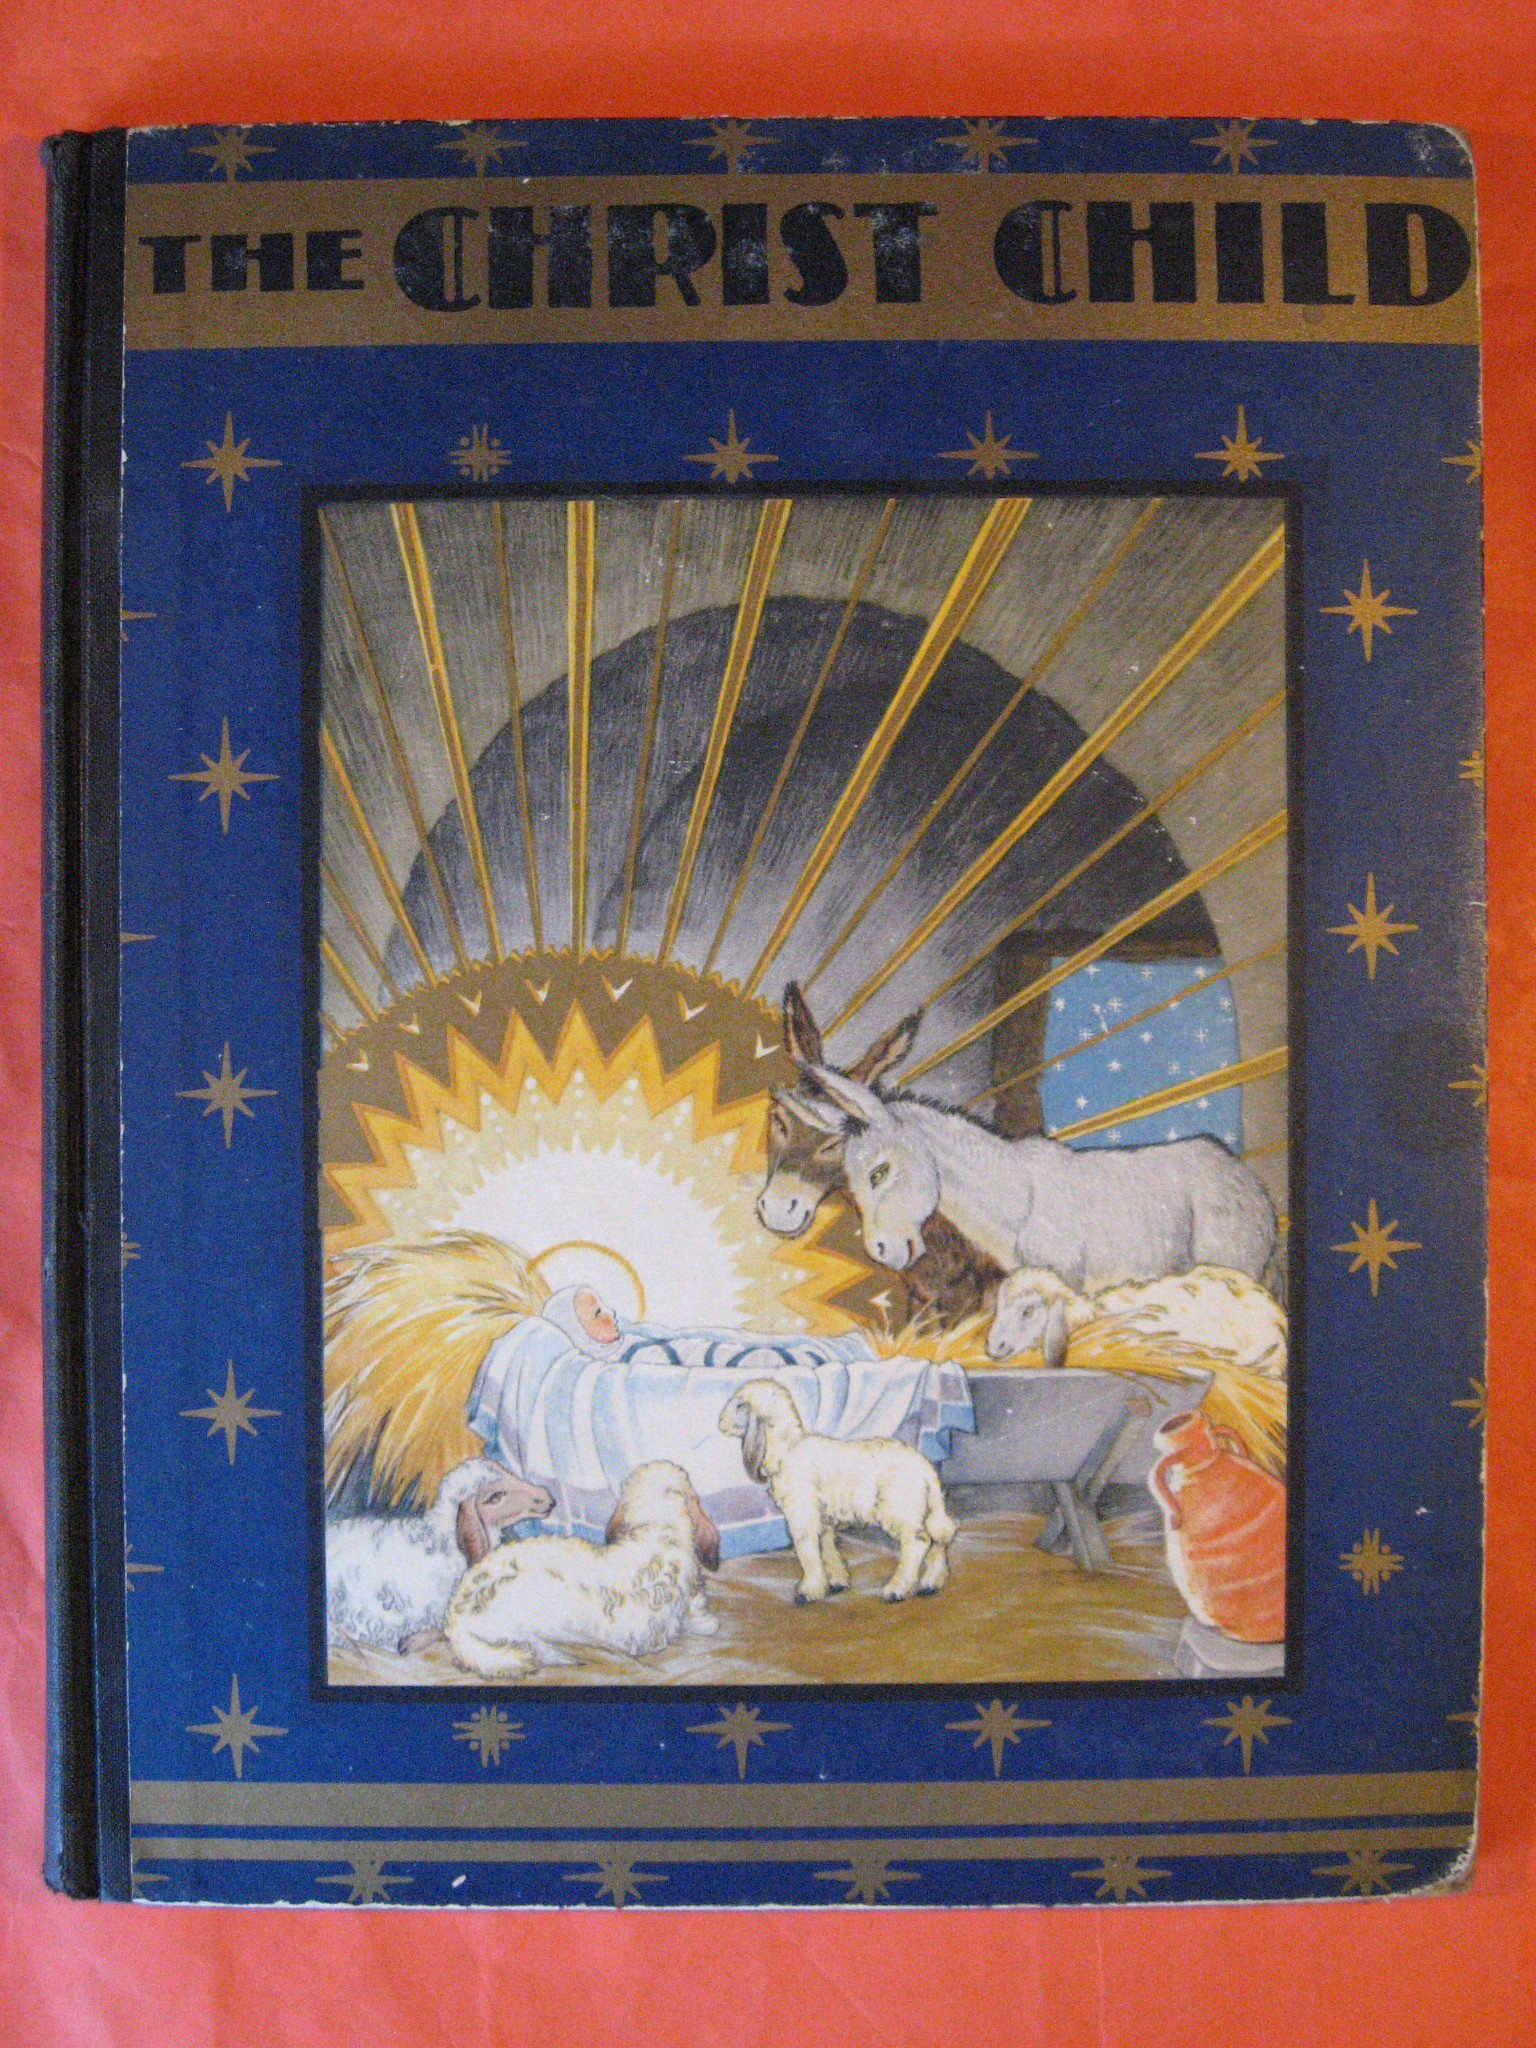 Image for Christ Child as Told By Matthew and Luke, The